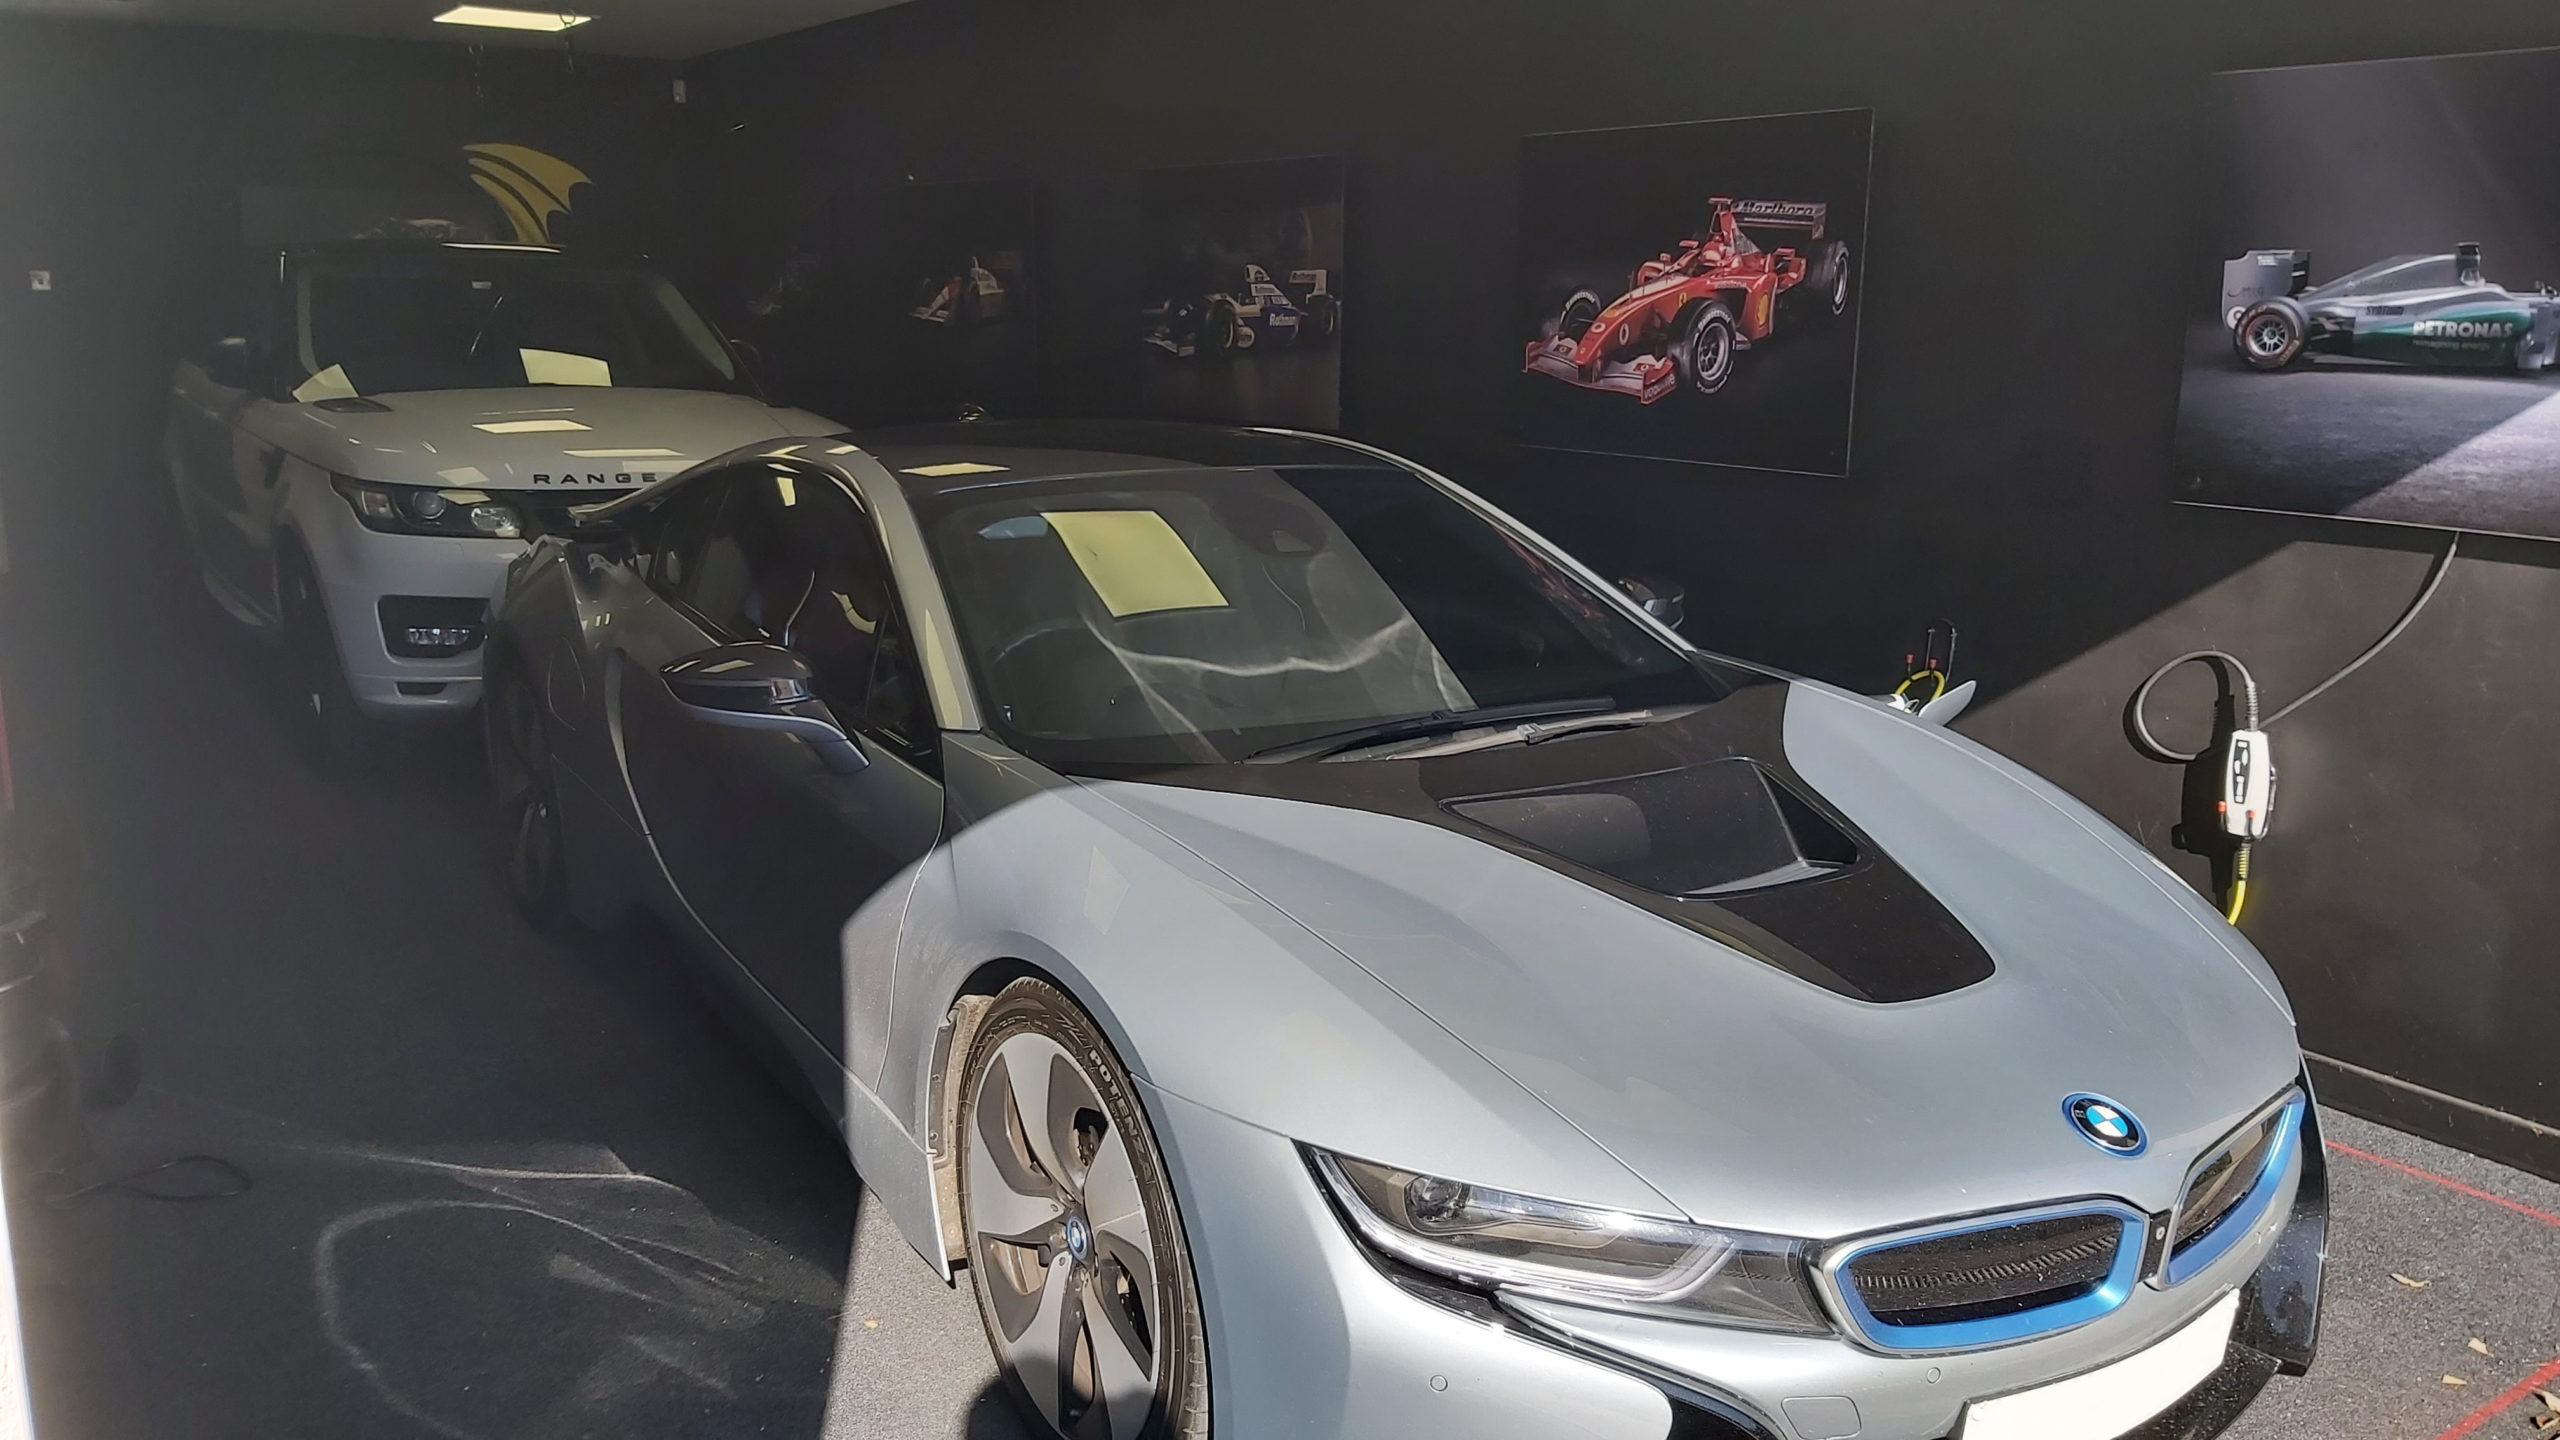 Electric car charging in garage building